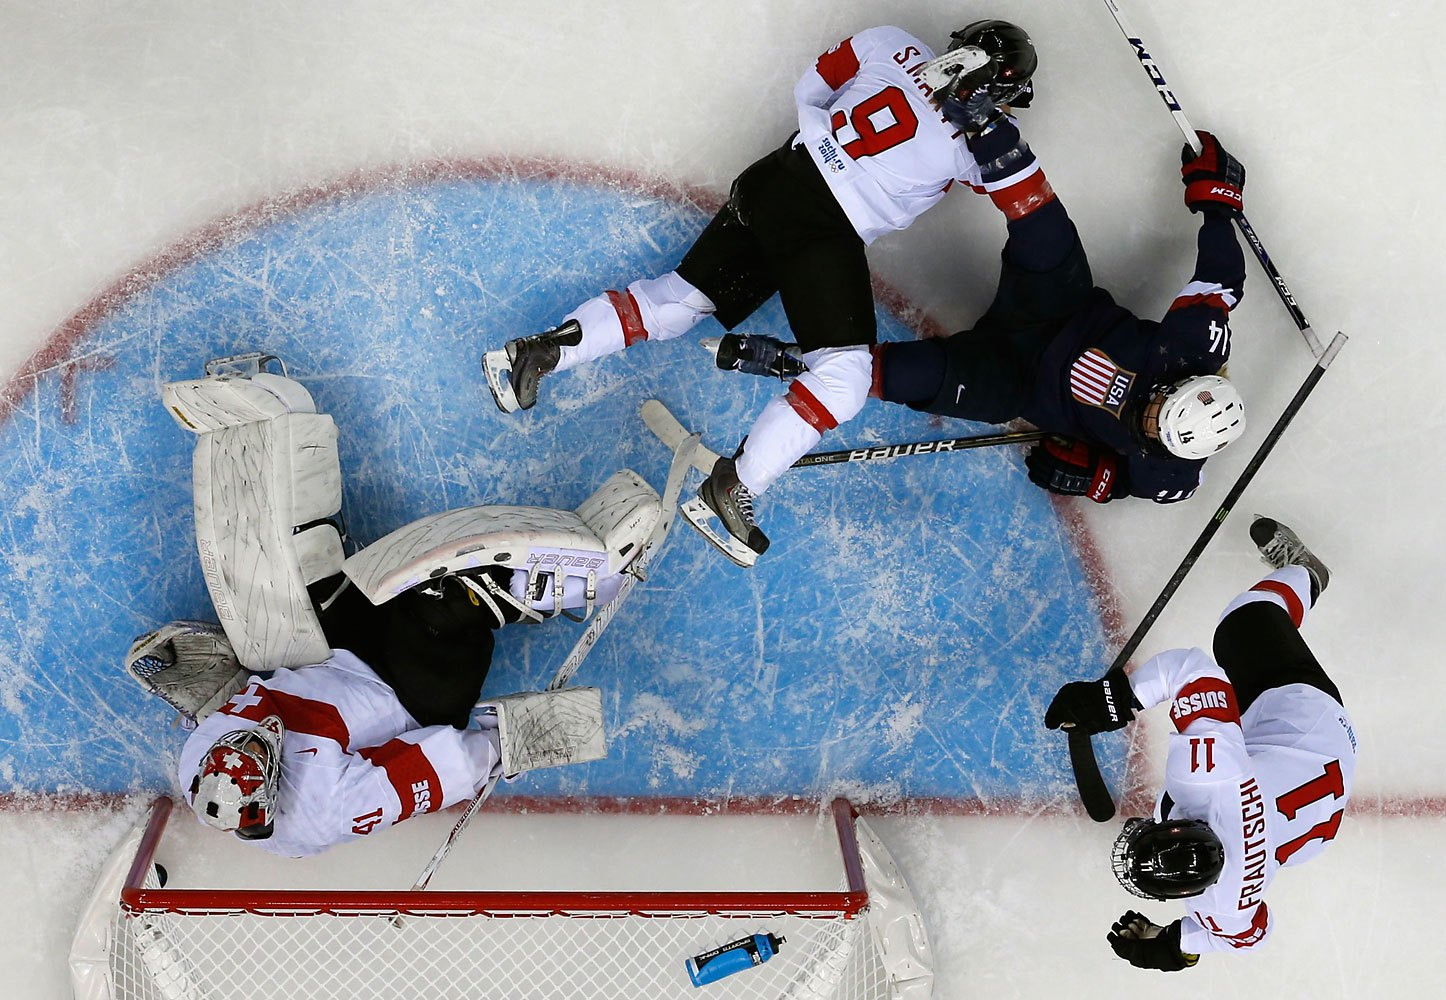 The puck sits in the net behind Switzerland's goalie Florence Schelling after a goal by Team USA's Amanda Kessel (not seen), during the first period of their women's preliminary round hockey game at the Sochi 2014 Winter Olympic Games Feb. 10, 2014.